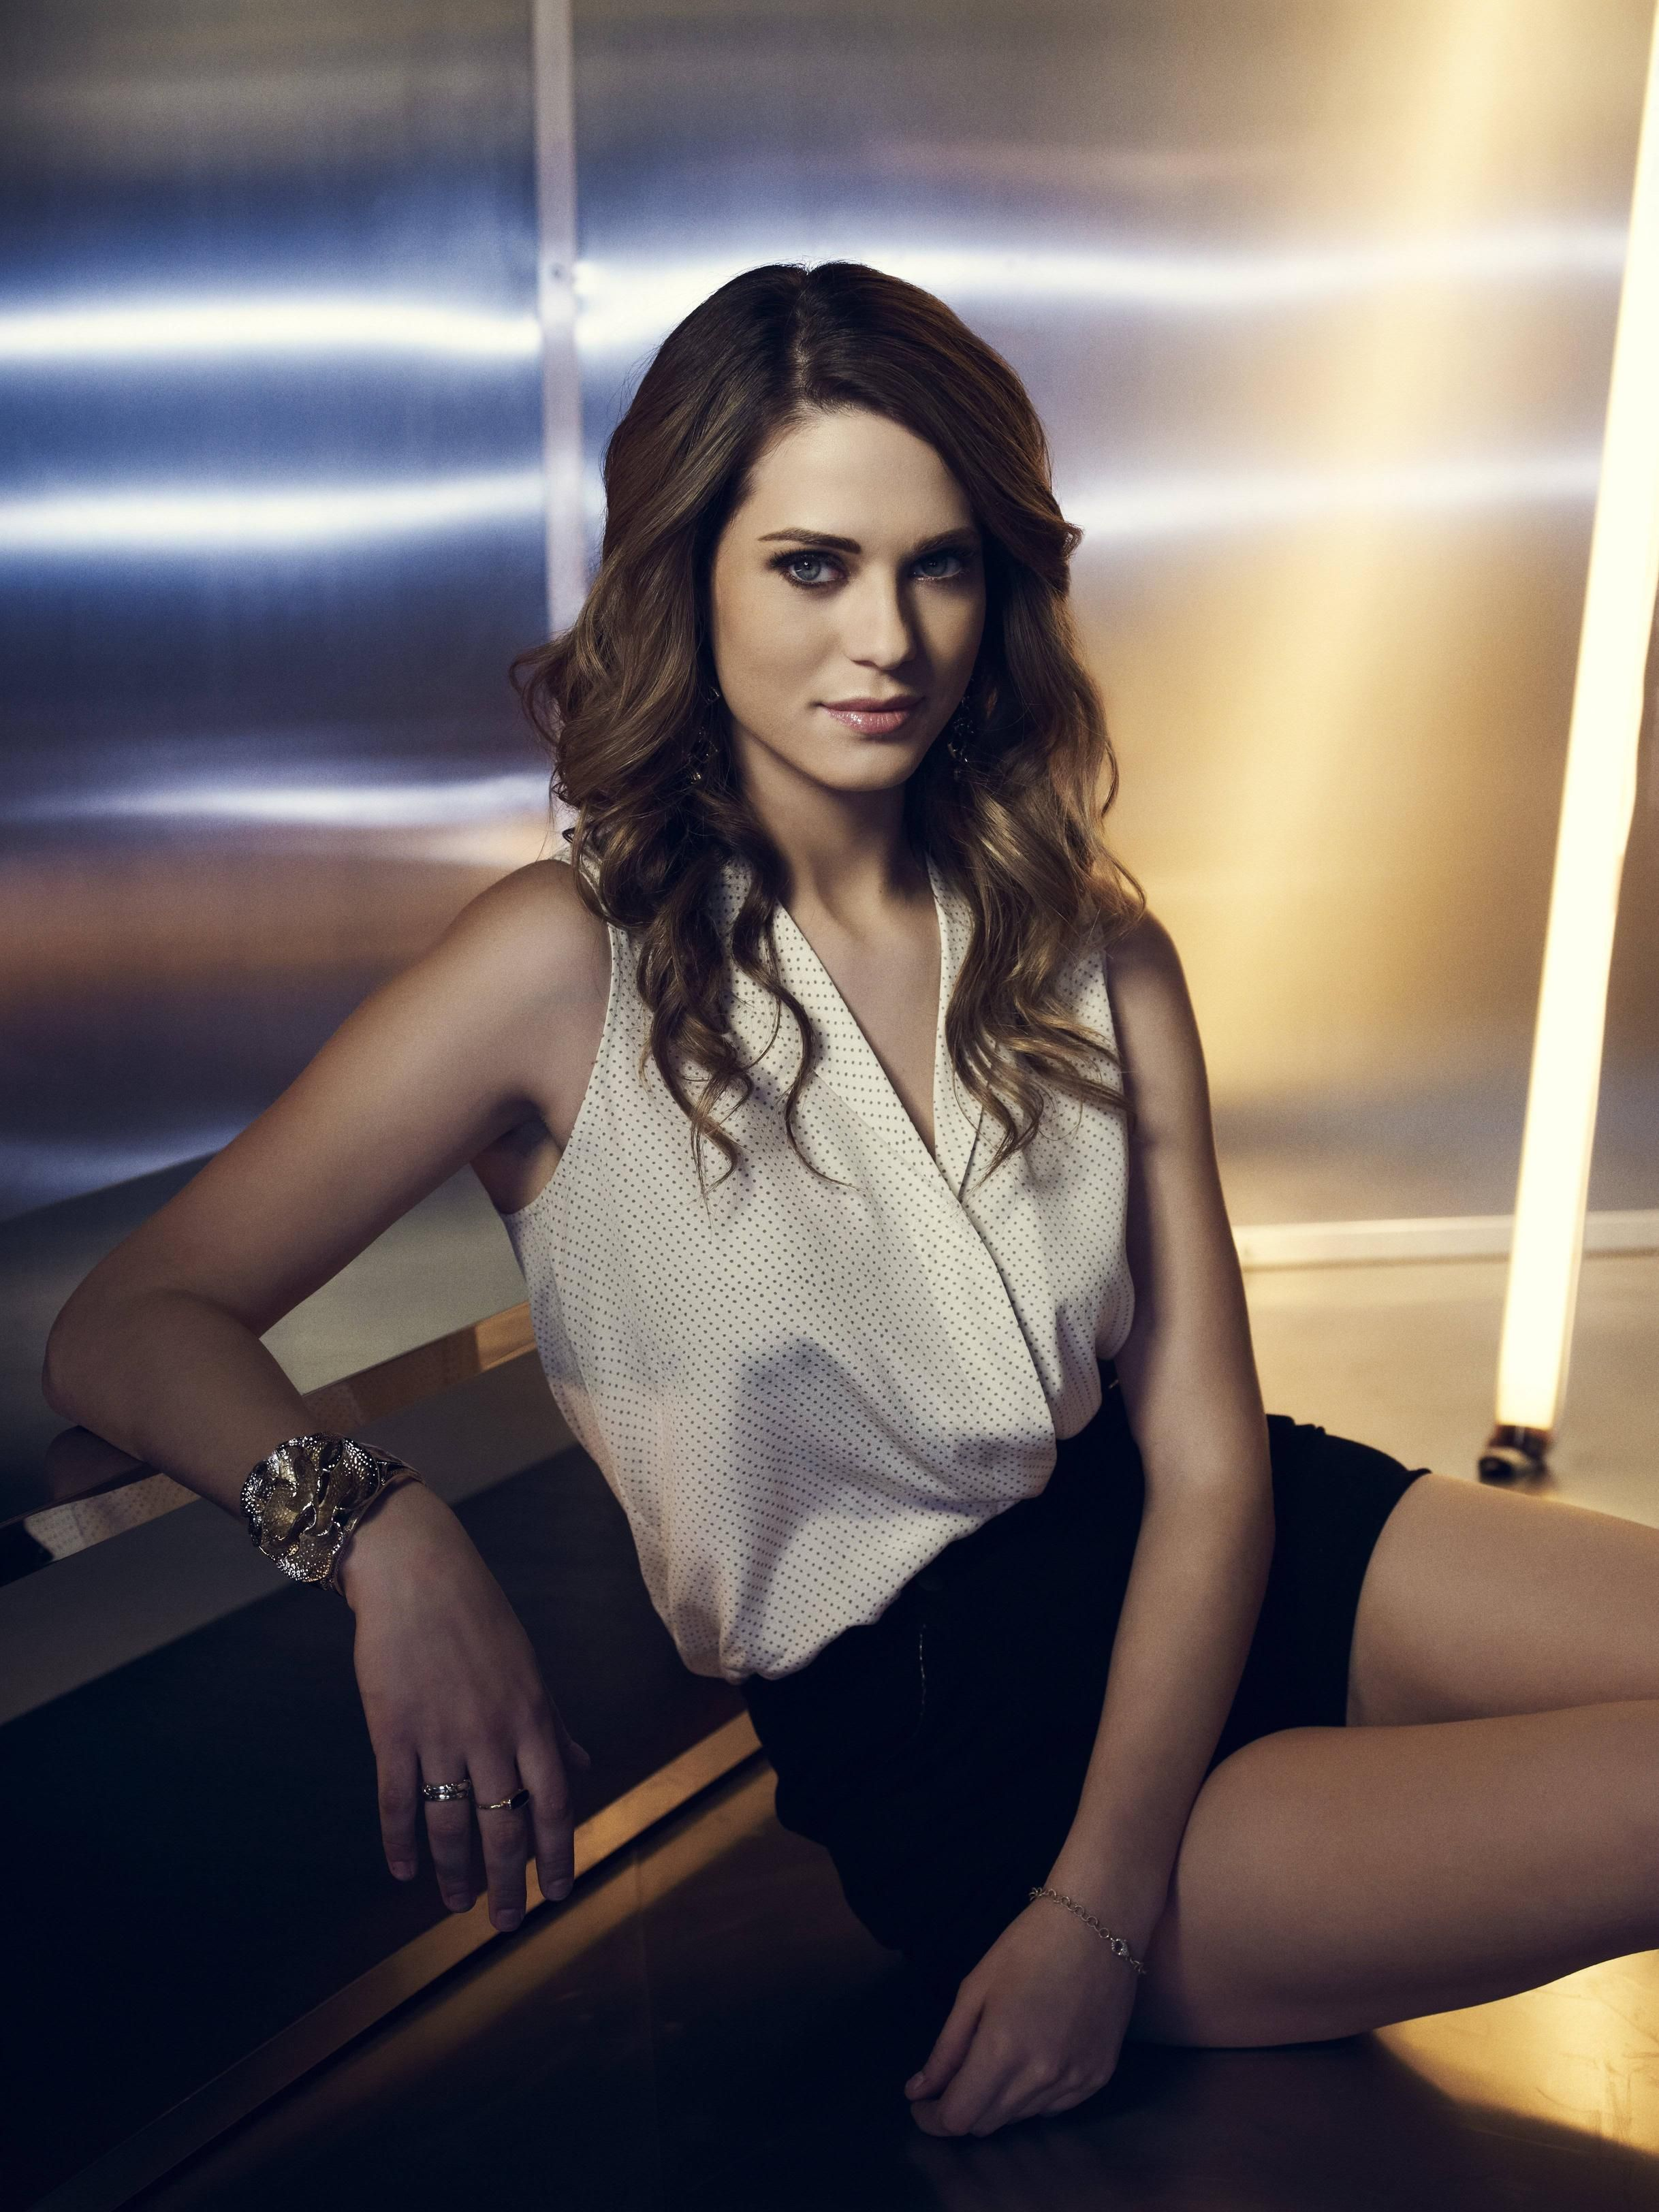 Images Lyndsy Fonseca nude (24 foto and video), Sexy, Fappening, Boobs, braless 2015